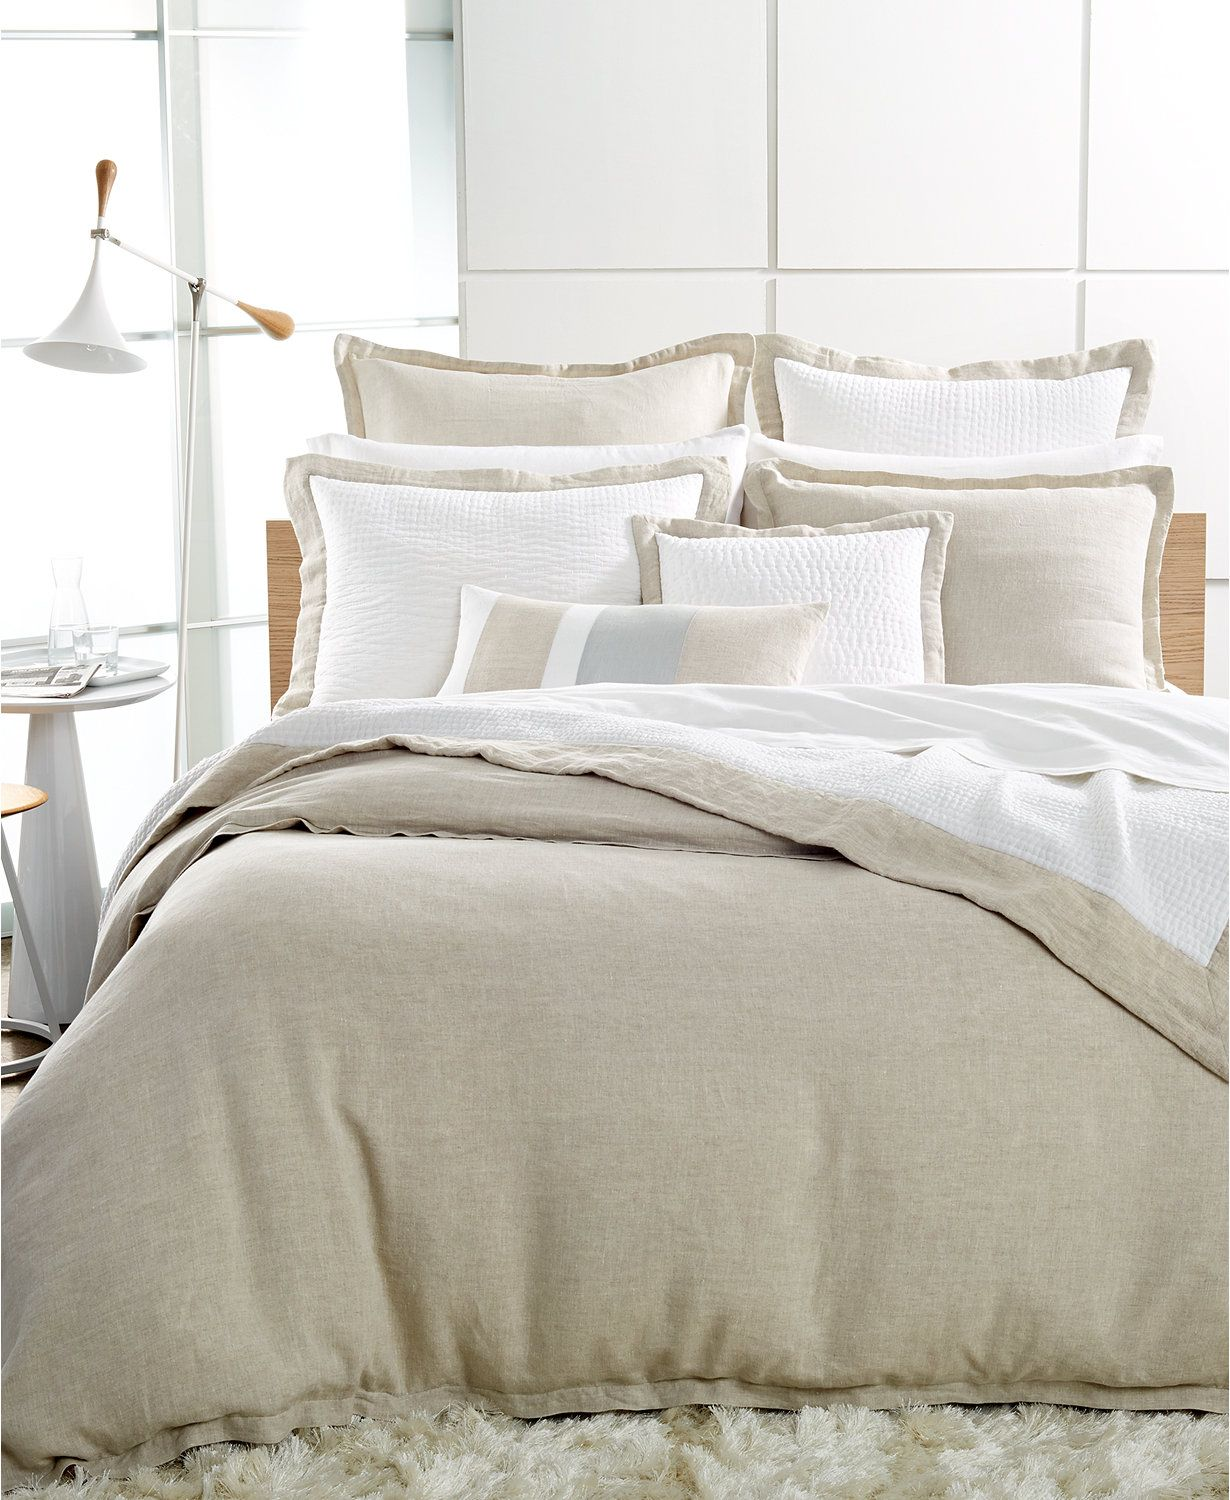 Hotel Collection Linen Natural Queen Duvet Cover Macys Com